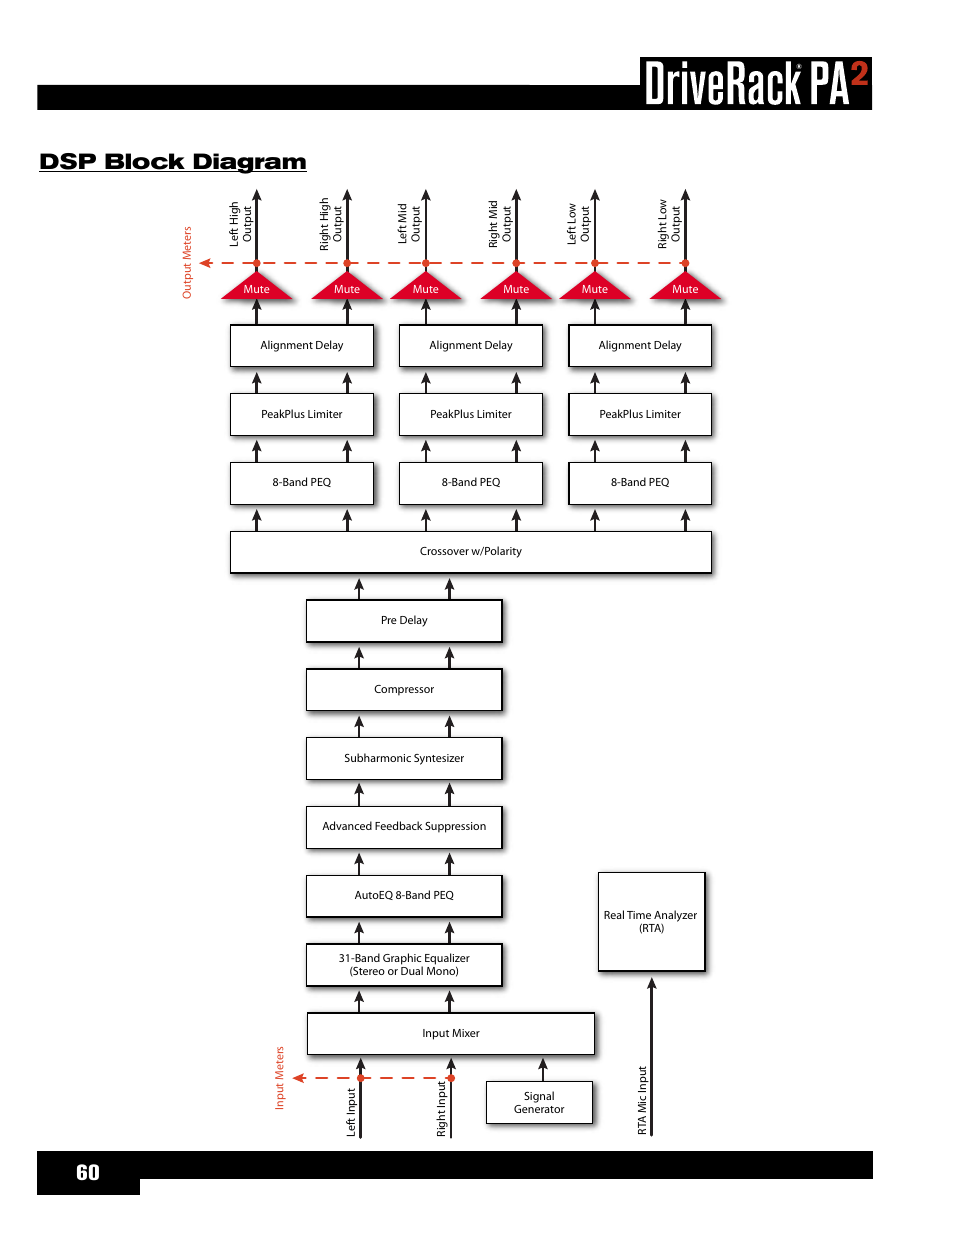 dbx crossover wiring diagram wiring library Ethernet Wiring Diagram dsp block diagram dbx driverack pa2 user manual page 64 70